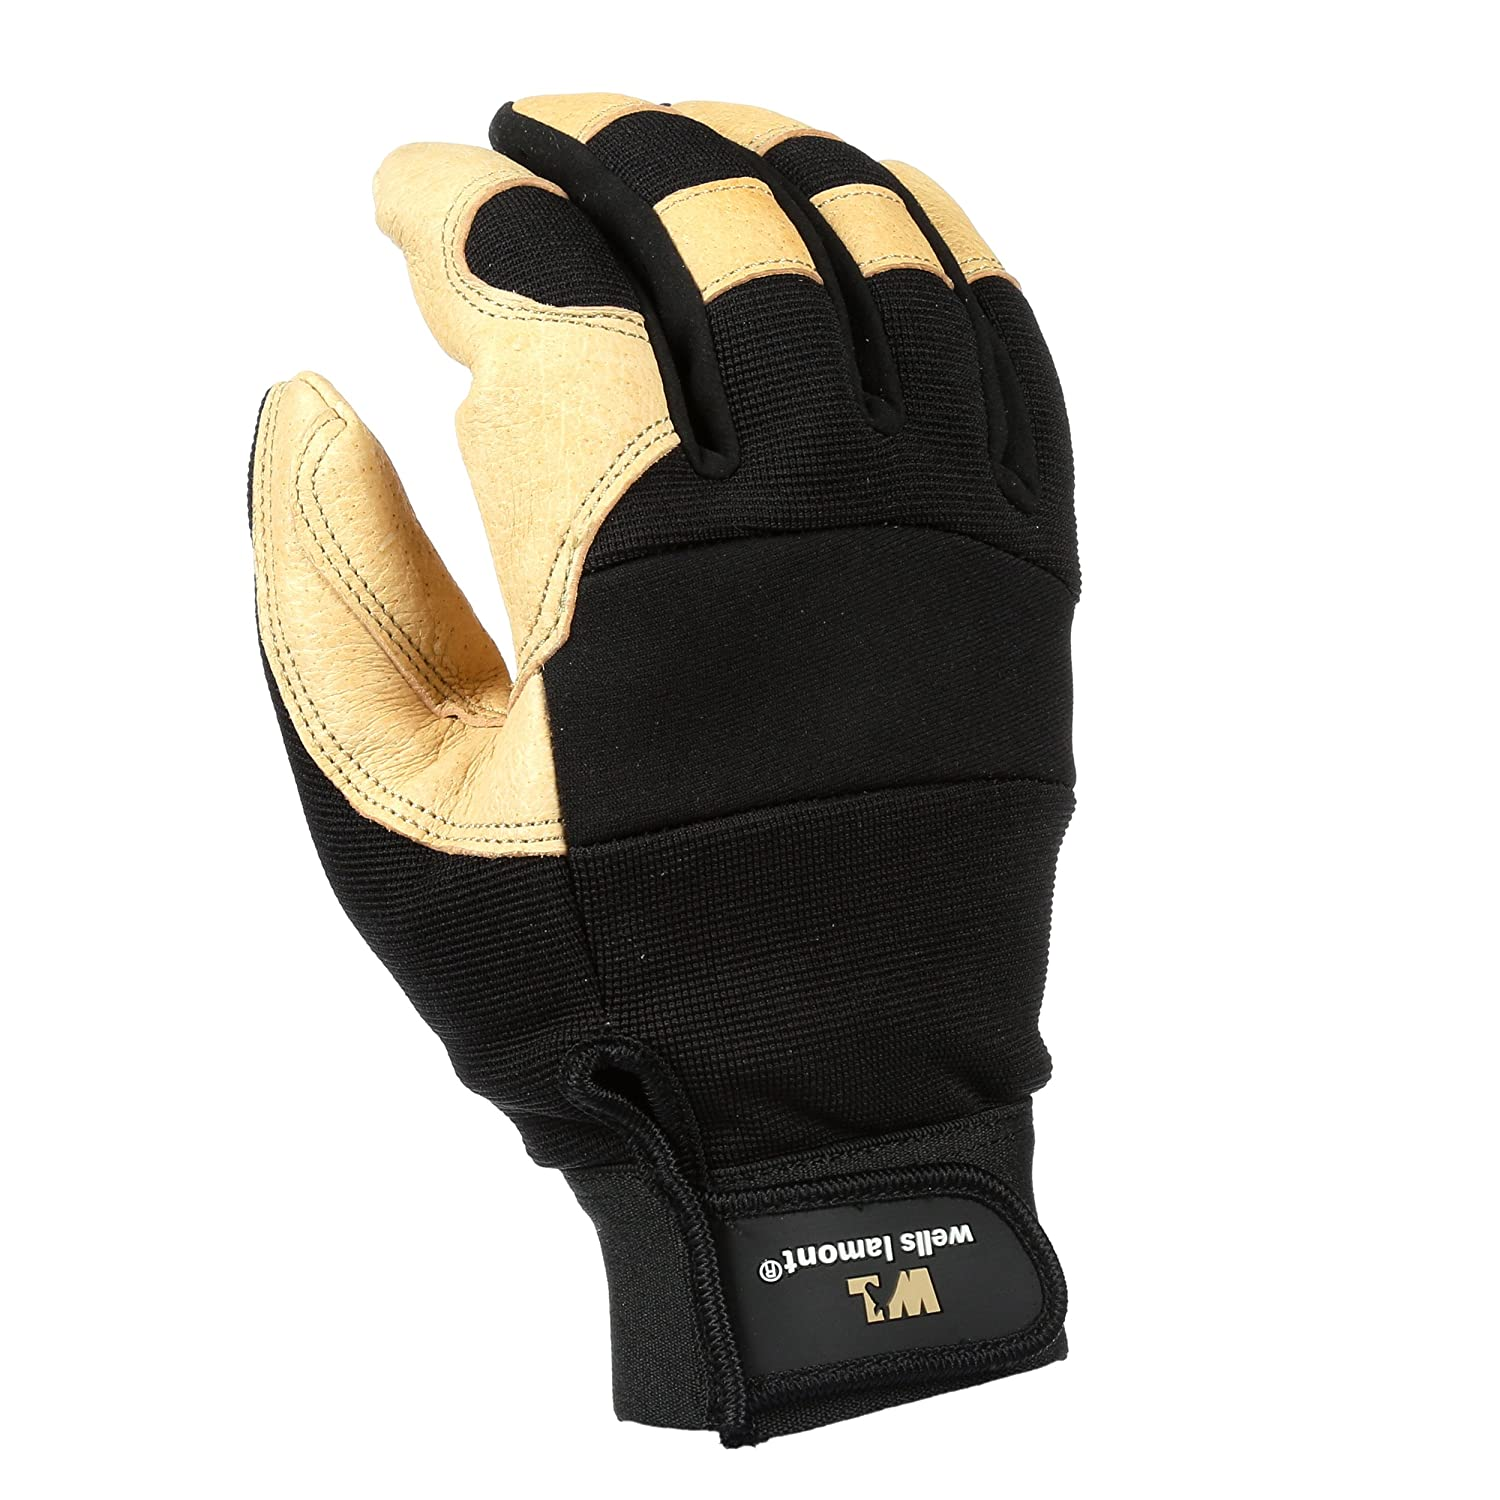 Insulated leather work gloves amazon - Wells Lamont Hi Dexterity Leather Work Gloves Ultra Comfort Stretch Fit Large 3214l Pig Gloves Amazon Com